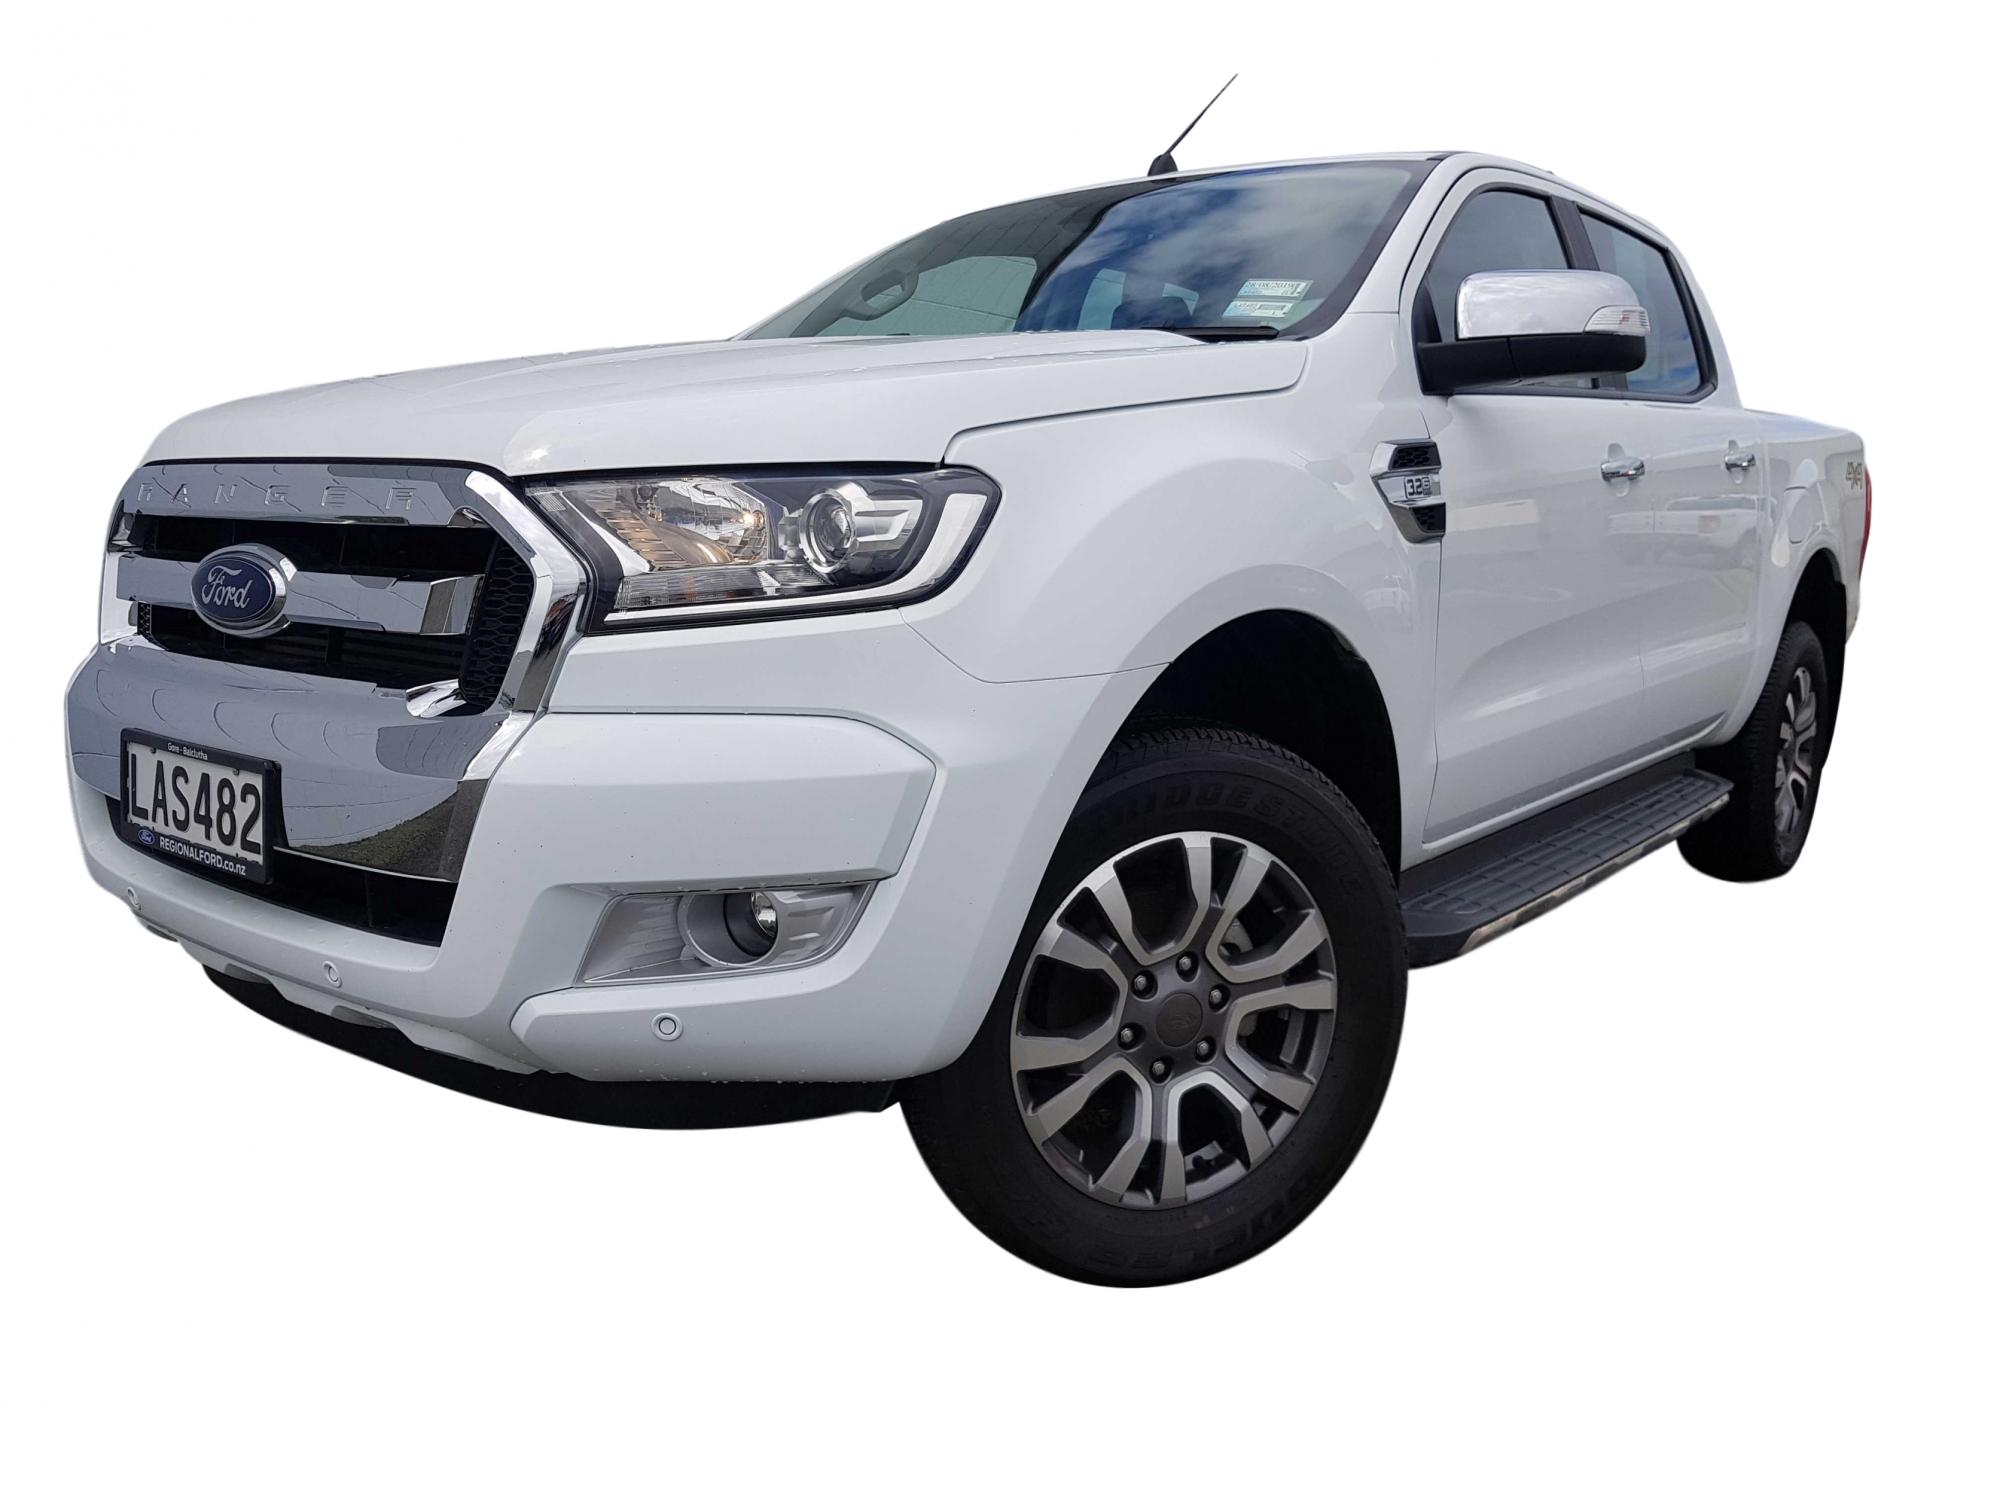 image-0, 2017 Ford Ranger XLT DOUBLE CAB W/S at Gore